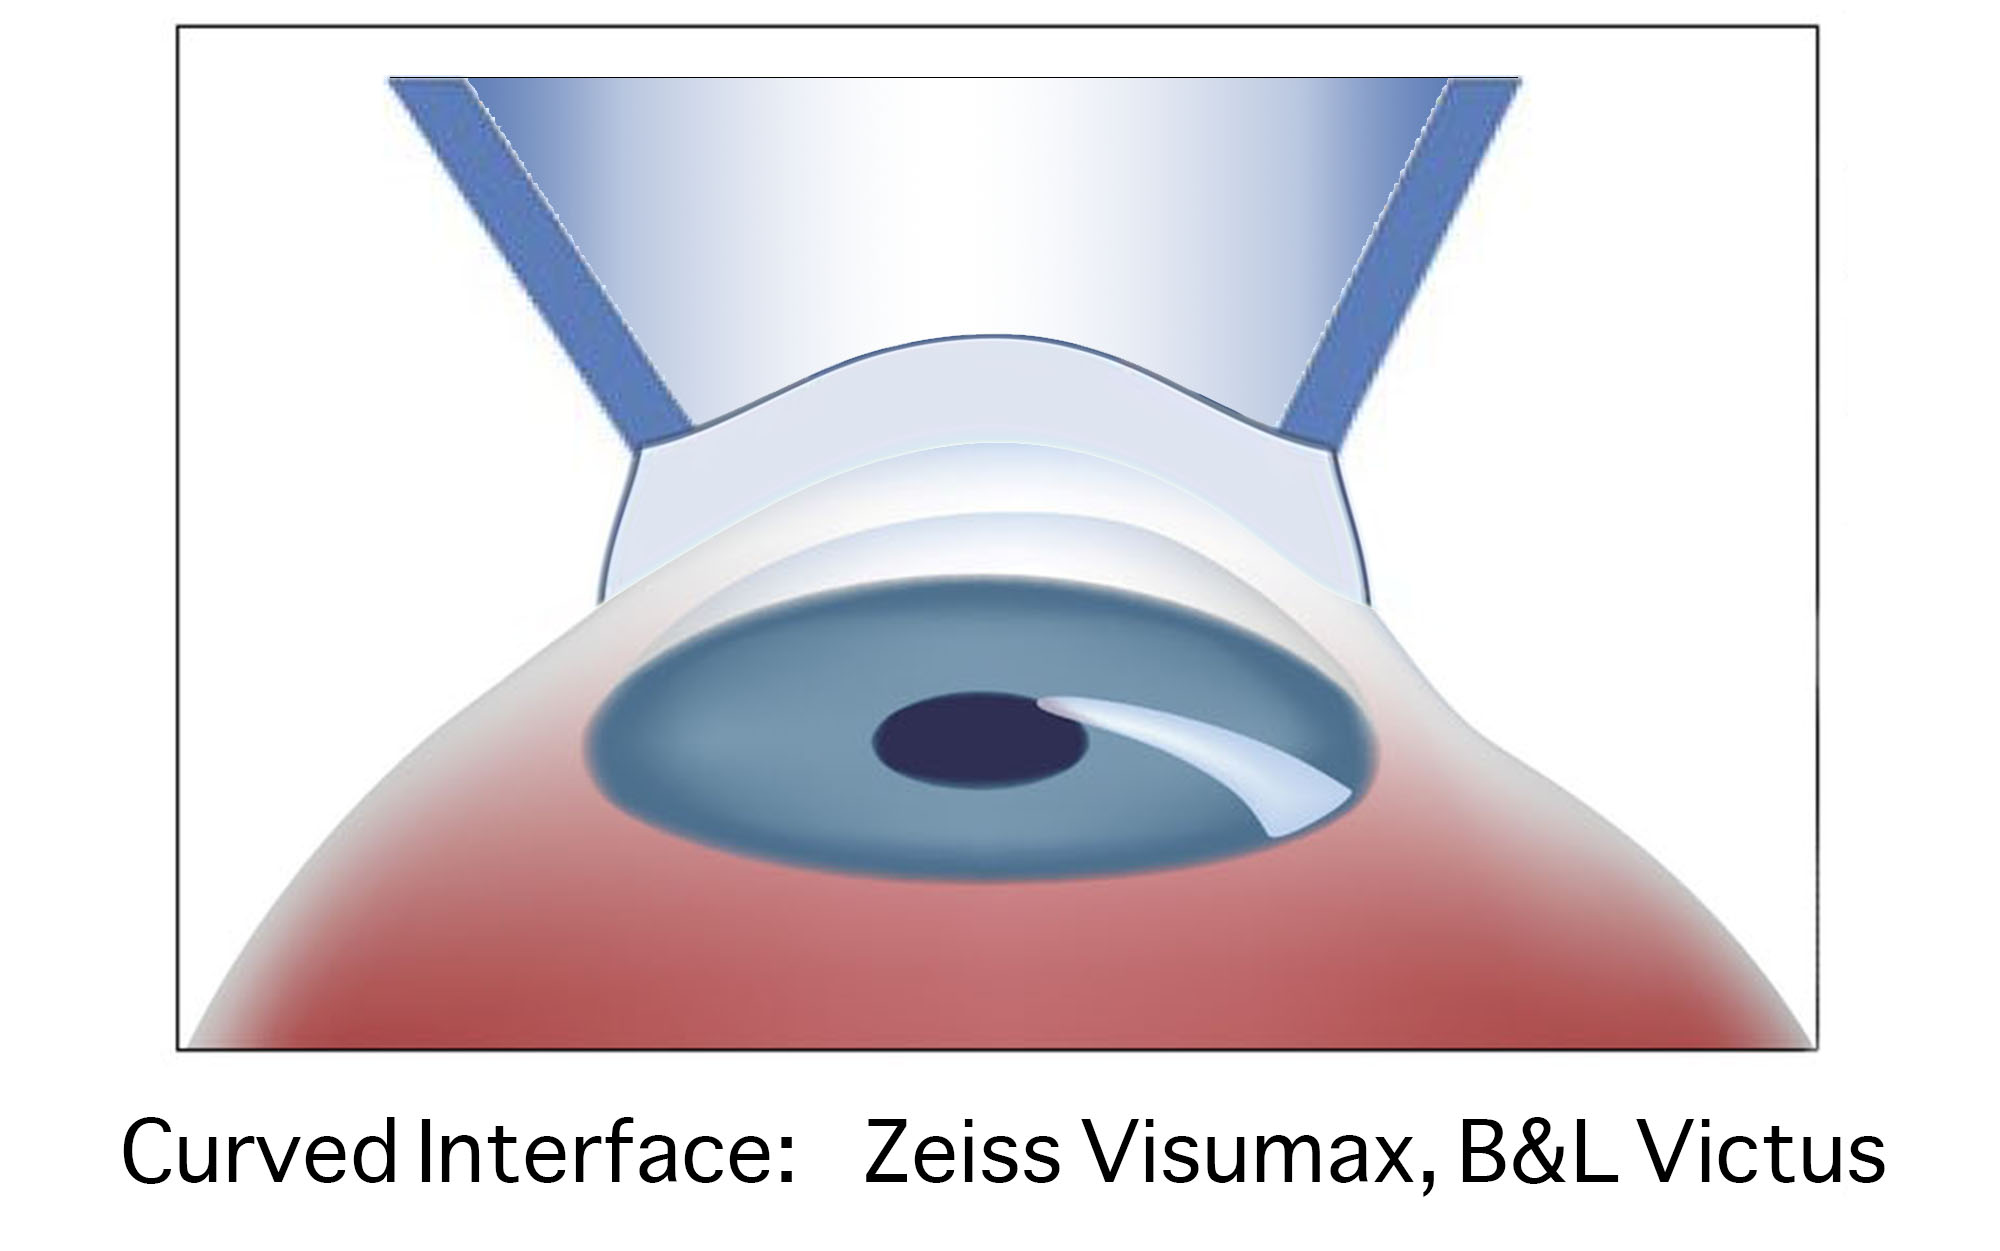 Curved patient interface on Zeiss Visumax femtosecond laser